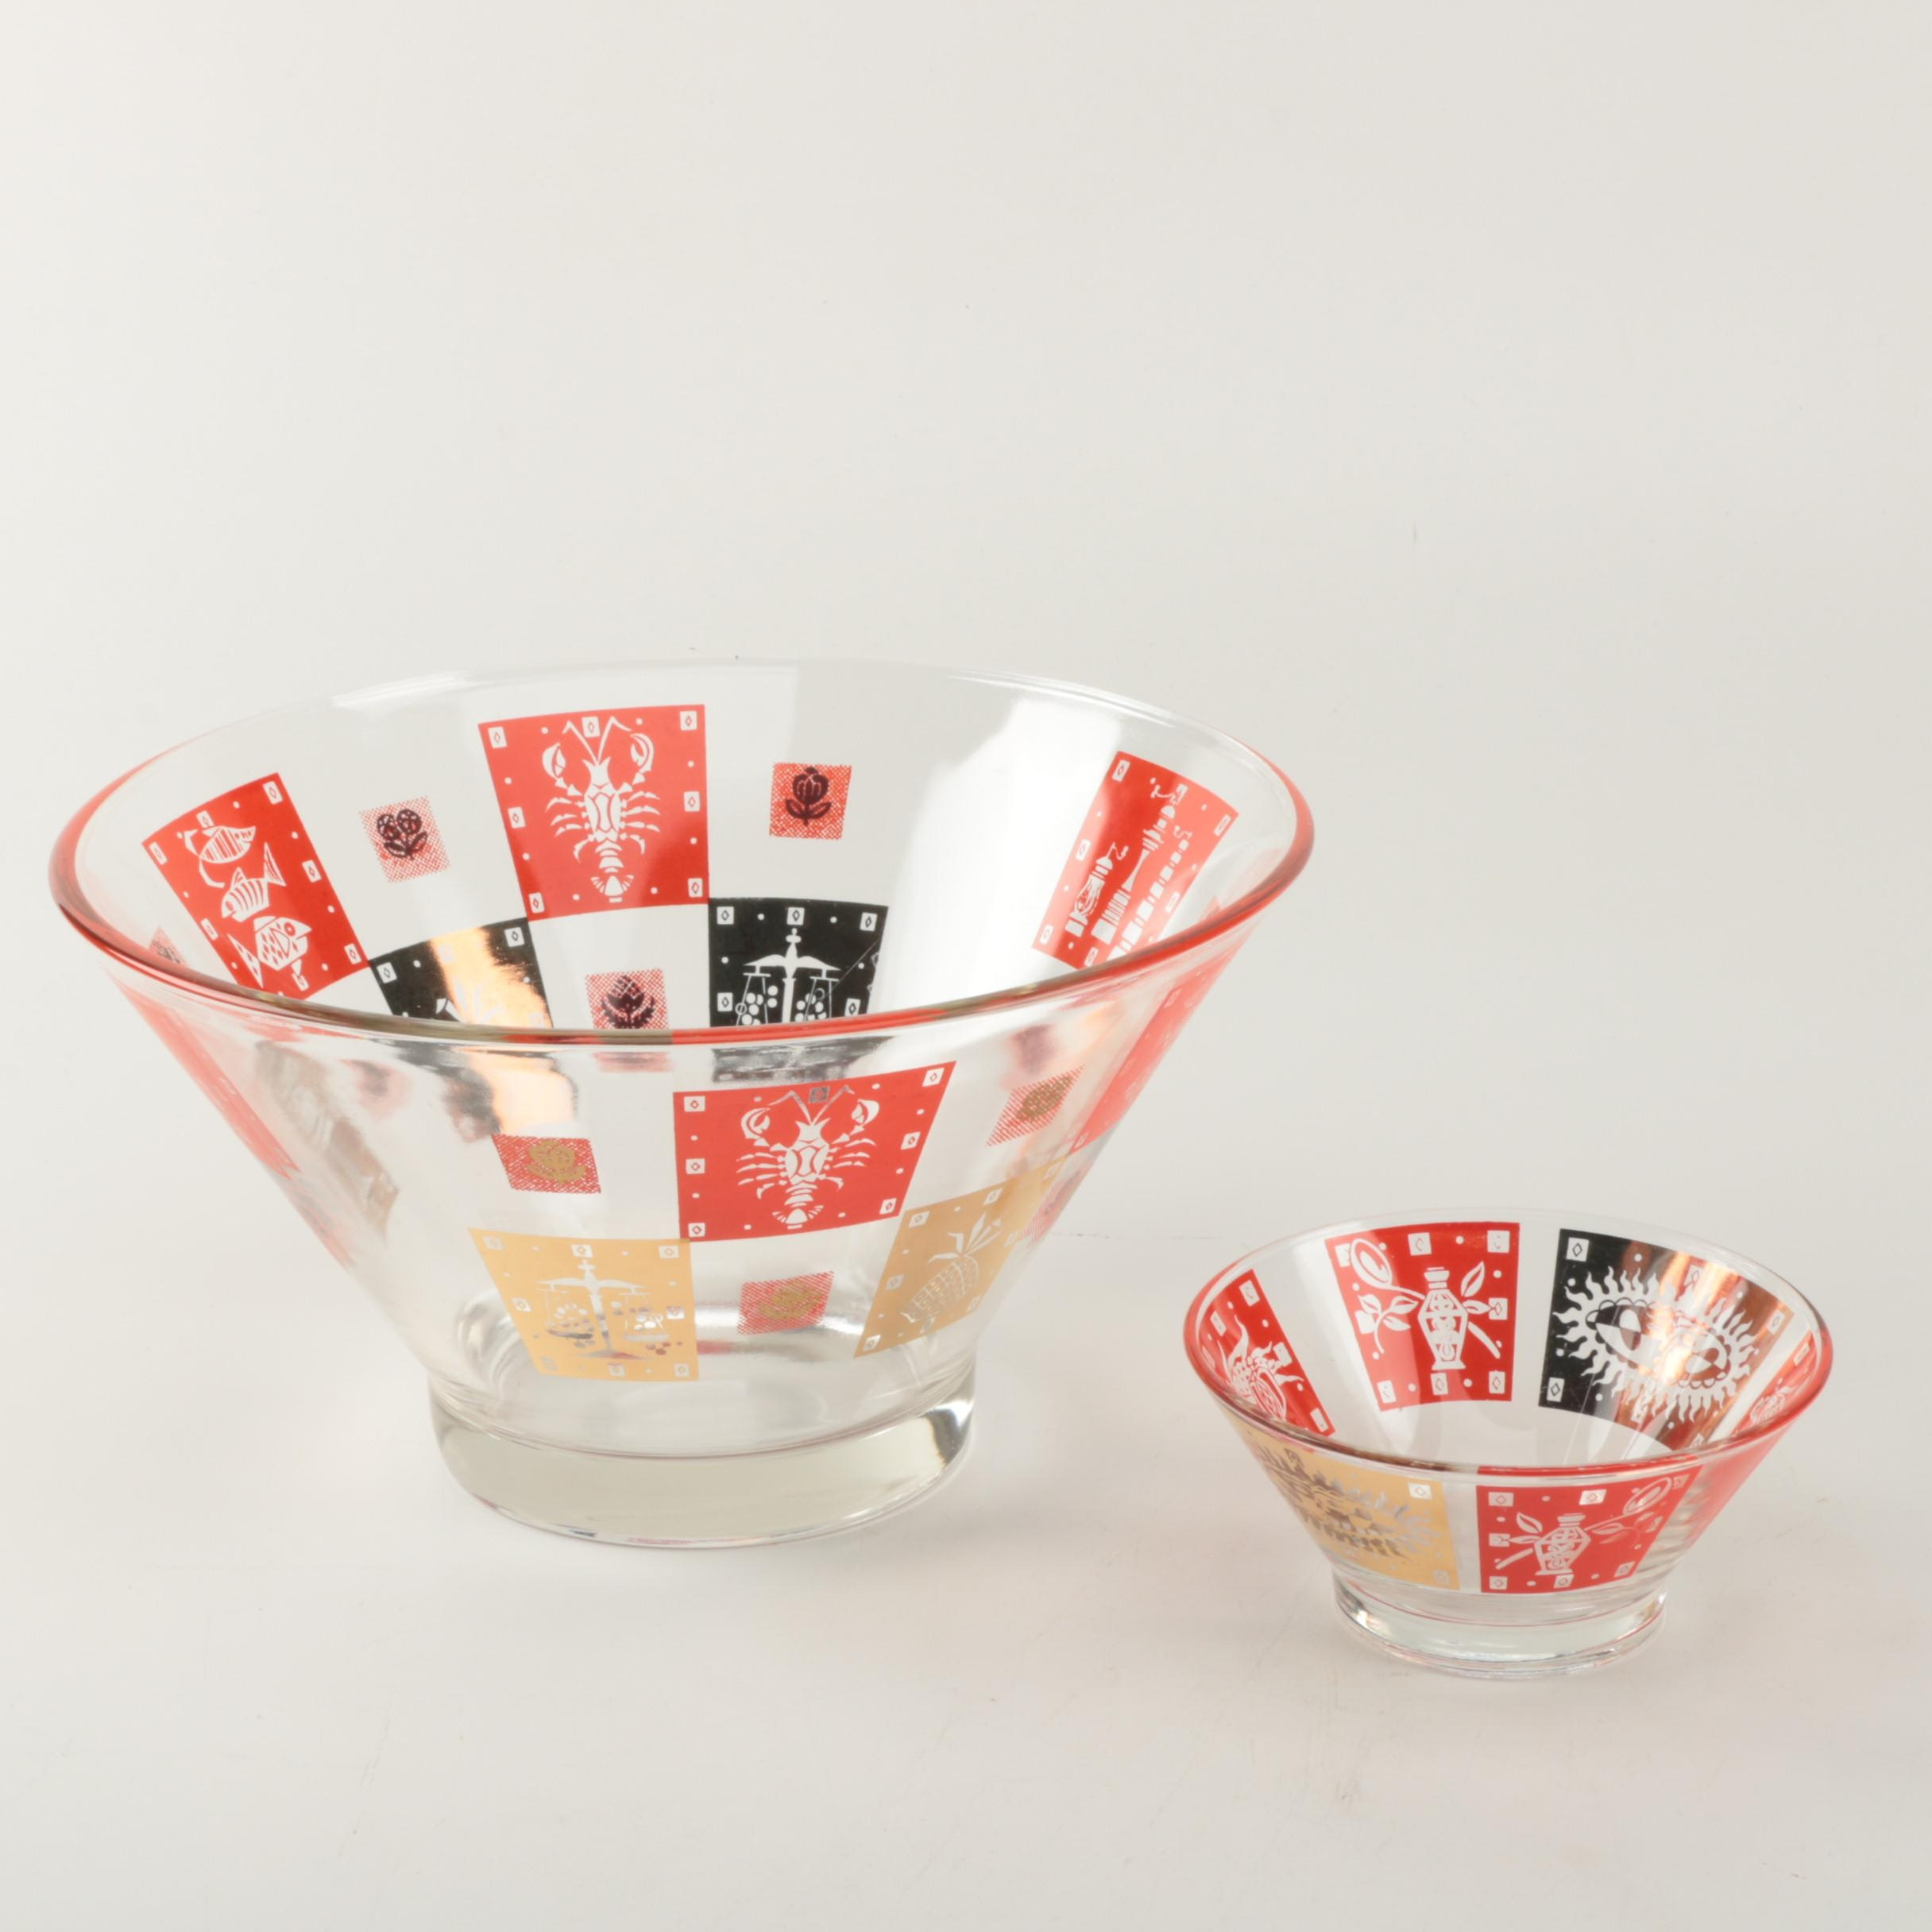 Vintage Mid Century Modern Federal Glass Chip and Dip Bowl Set